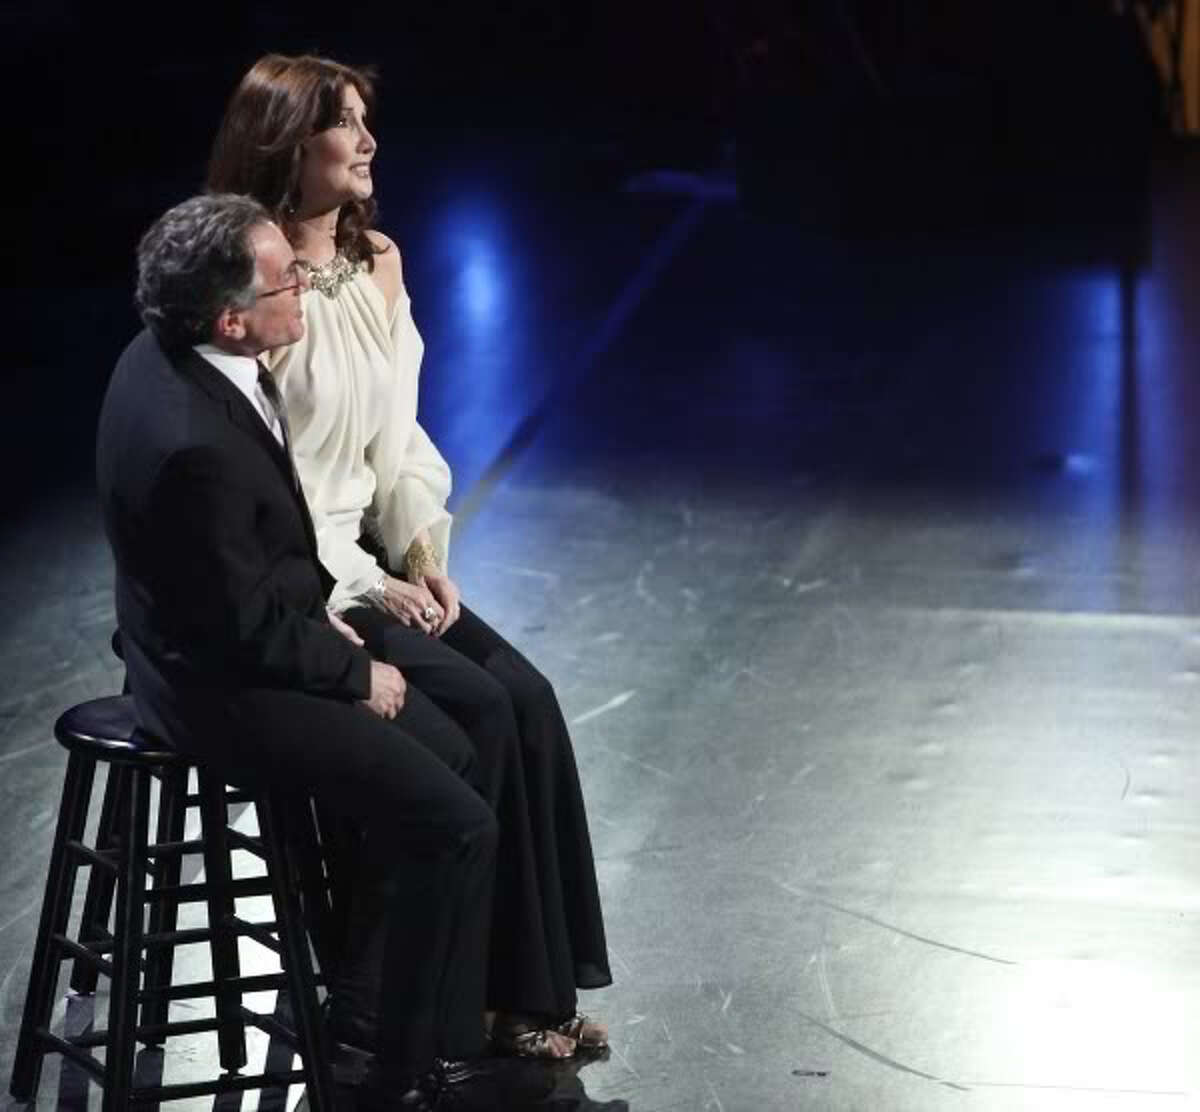 """Fairfield performer Joanna Gleason won a Tony for her performance in the Stephen Sondheim musical """"Into the Woods."""" On the recent PBS Sondheim birthday celebration special, Gleason reunited with co-star Chip Zien for one of their numbers in the show,"""